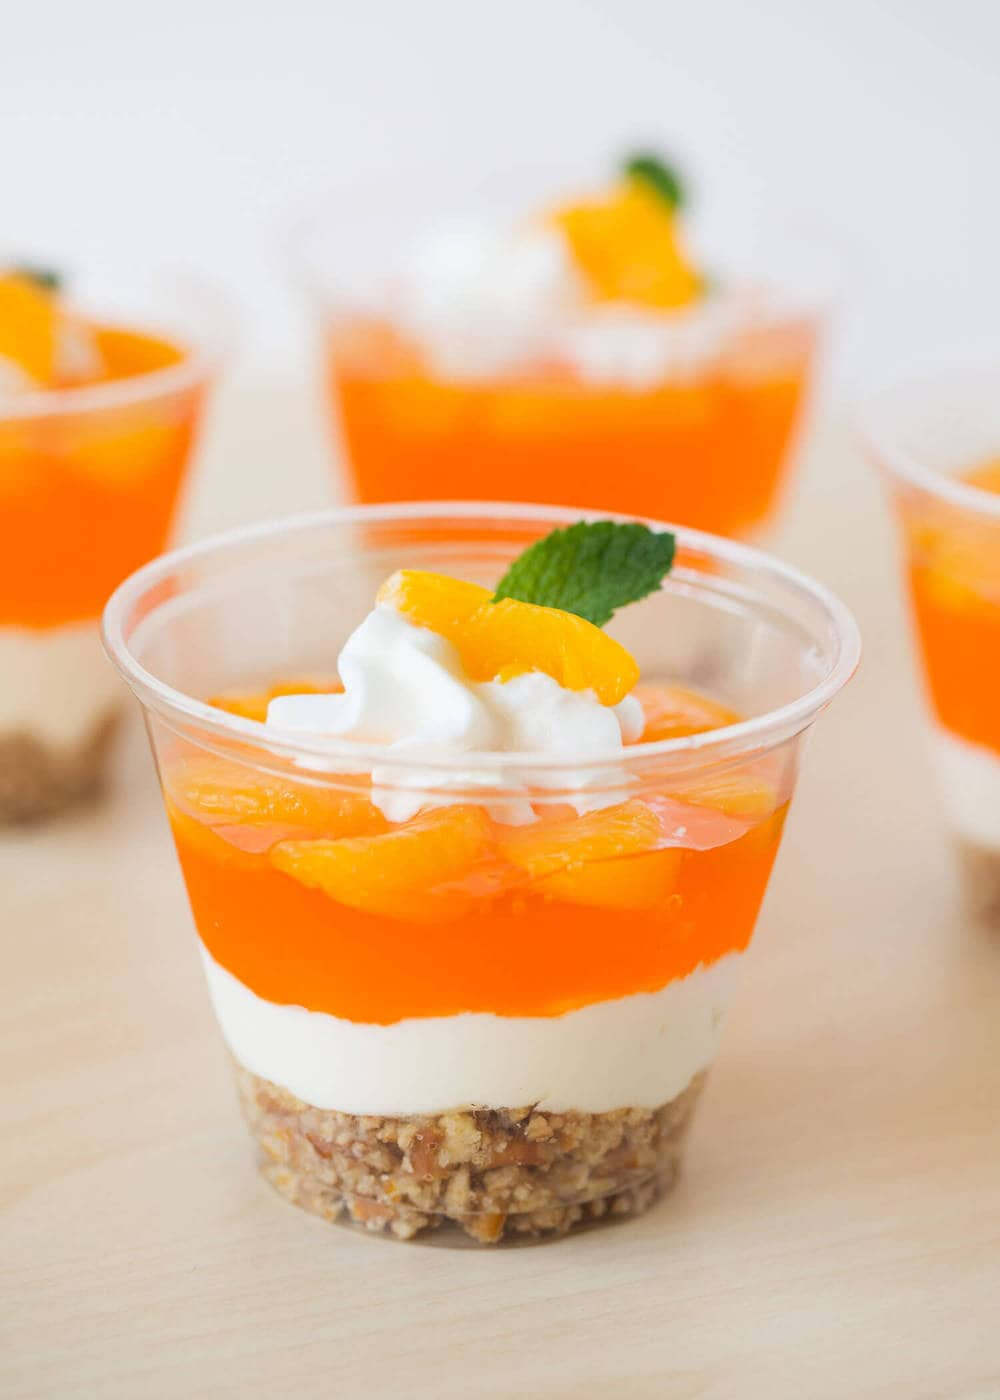 mandarin orange dessert parfait with whipped cream and a mint leaf on top